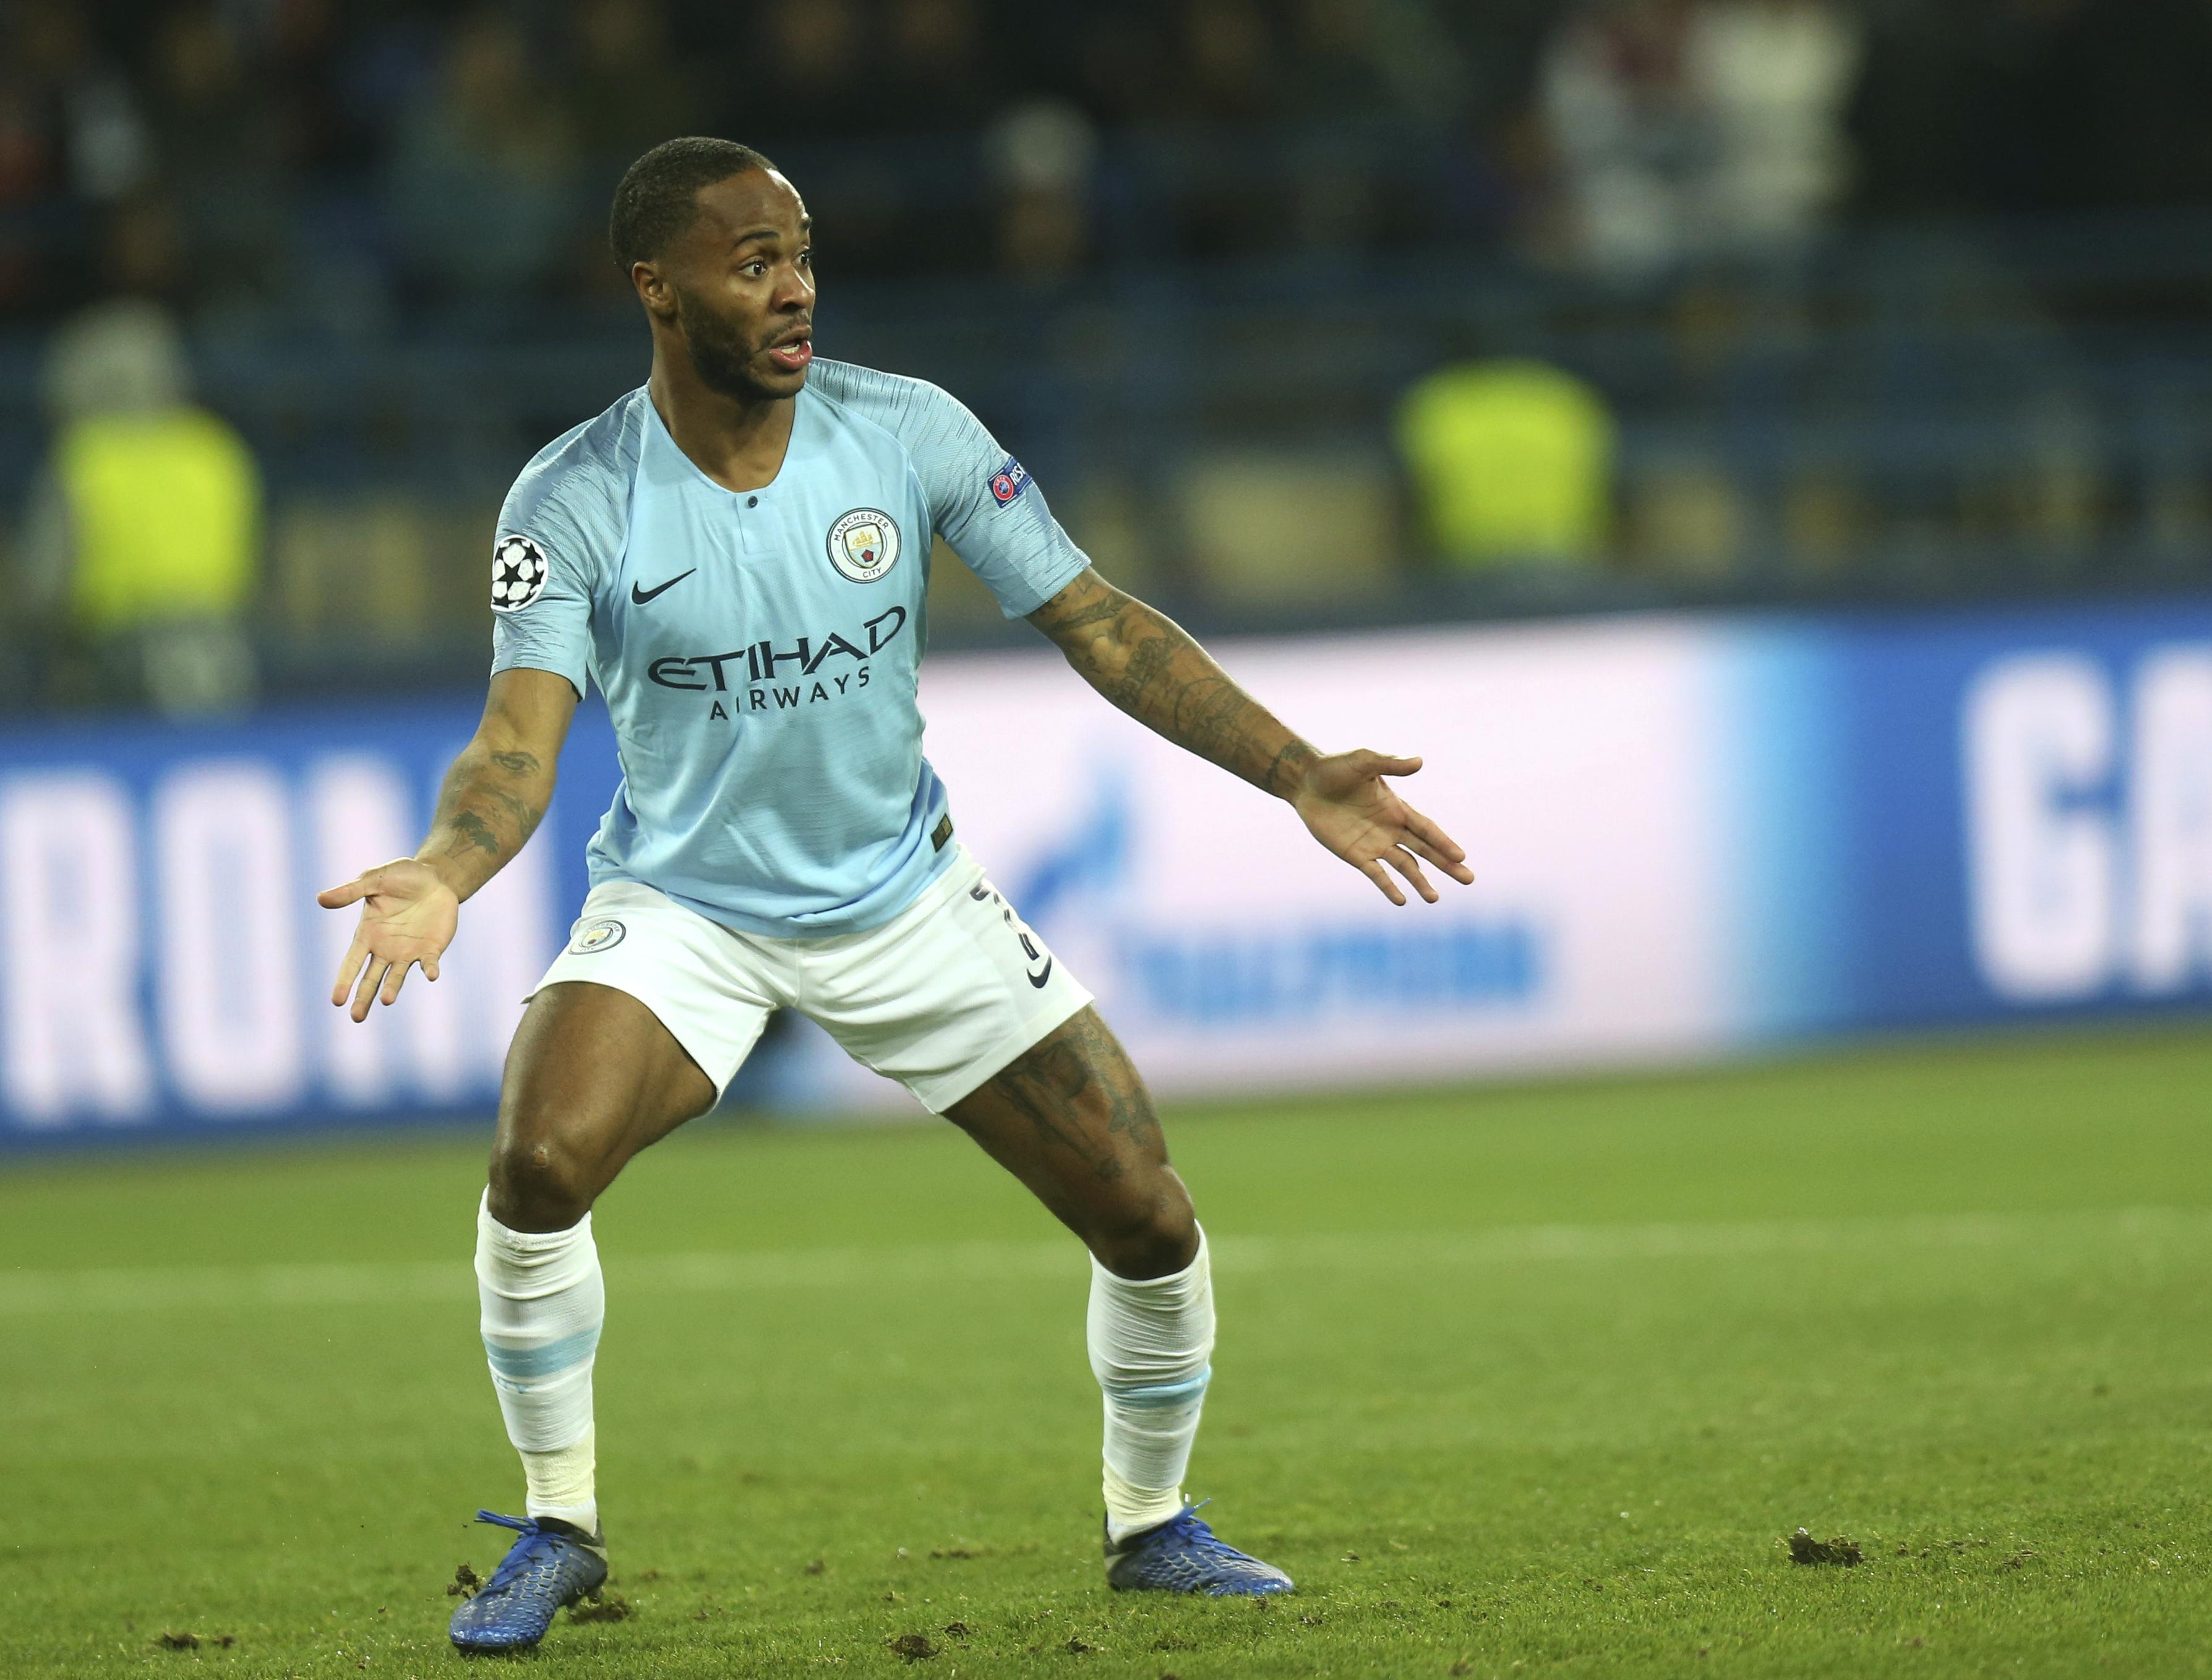 Raheem Sterling demanded a staggering £100,000-a-week pay rise